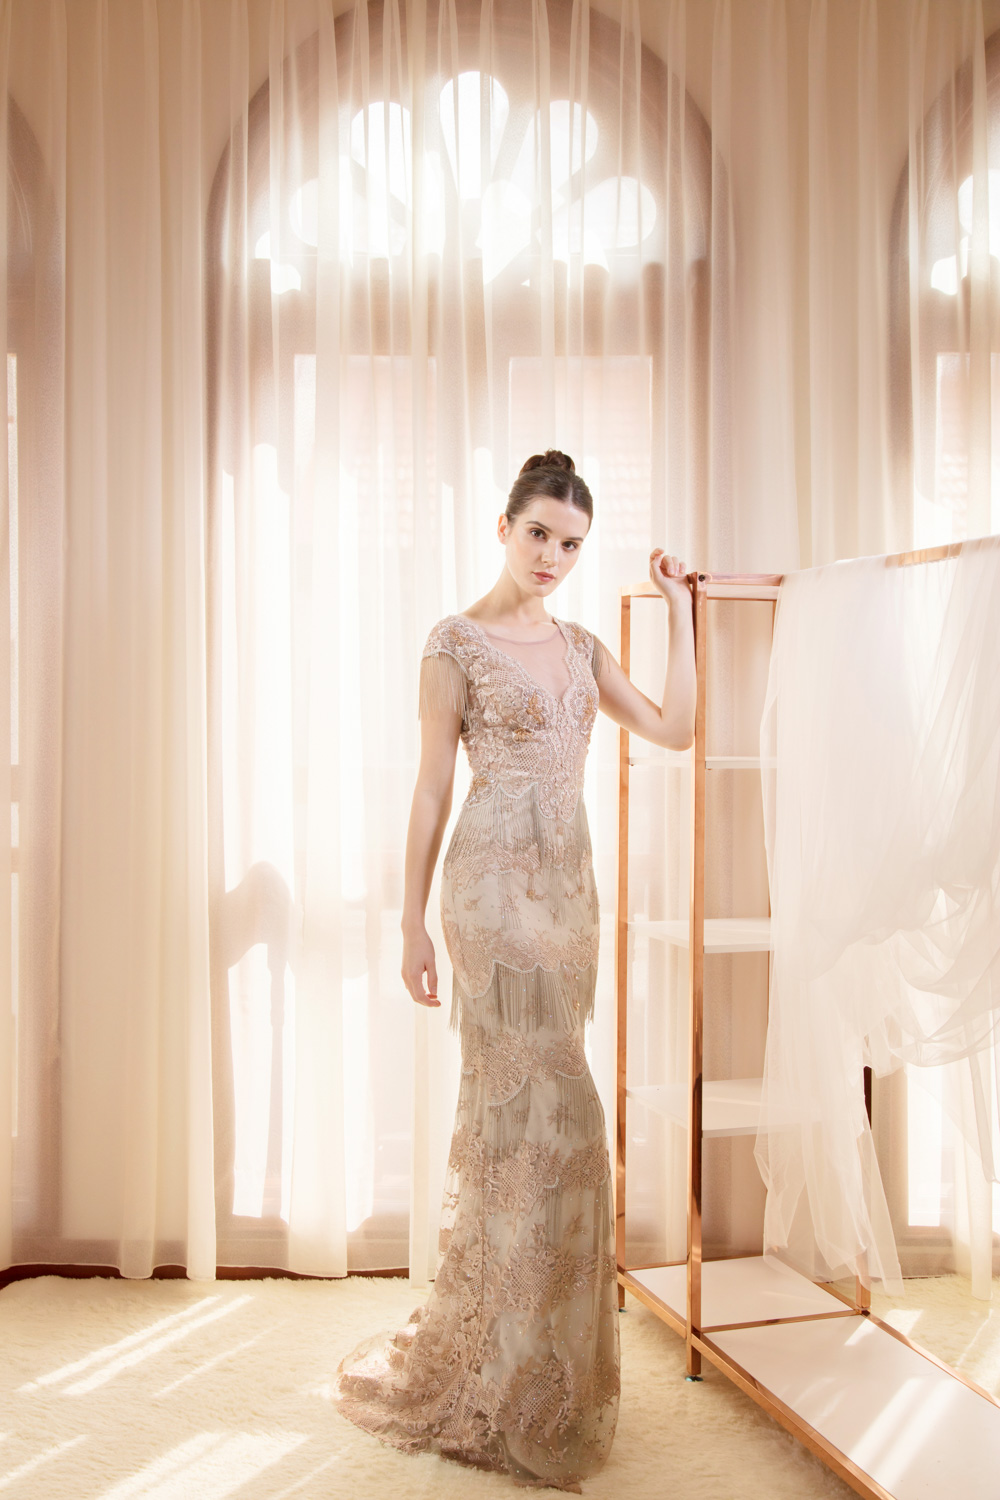 Evening gown with tassels by CCM Wedding